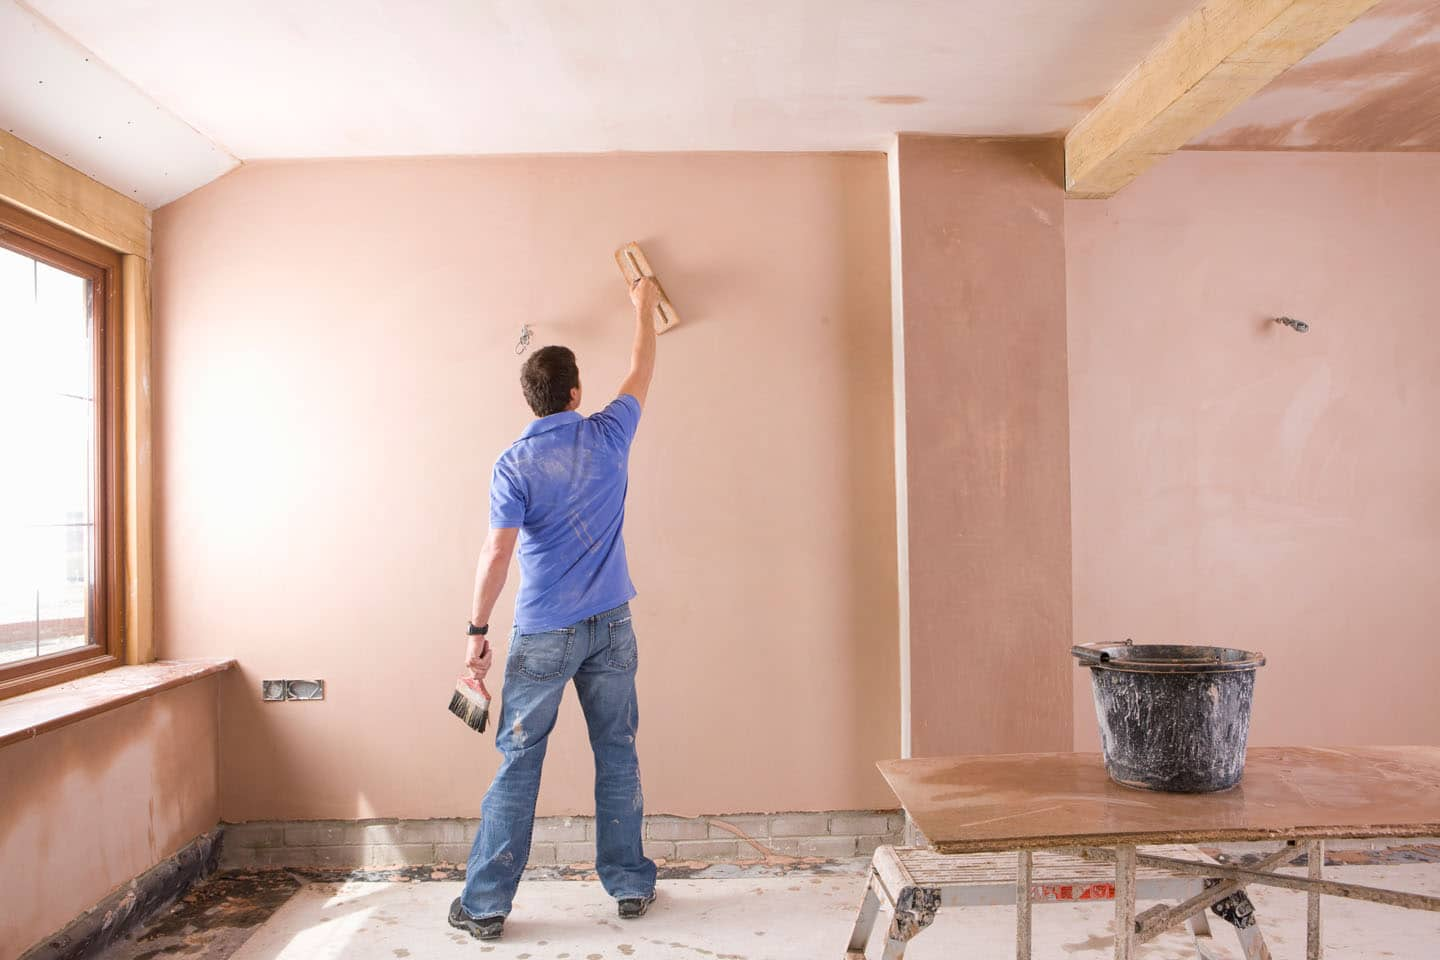 plastering costs: what to expect when plastering, re-plastering or